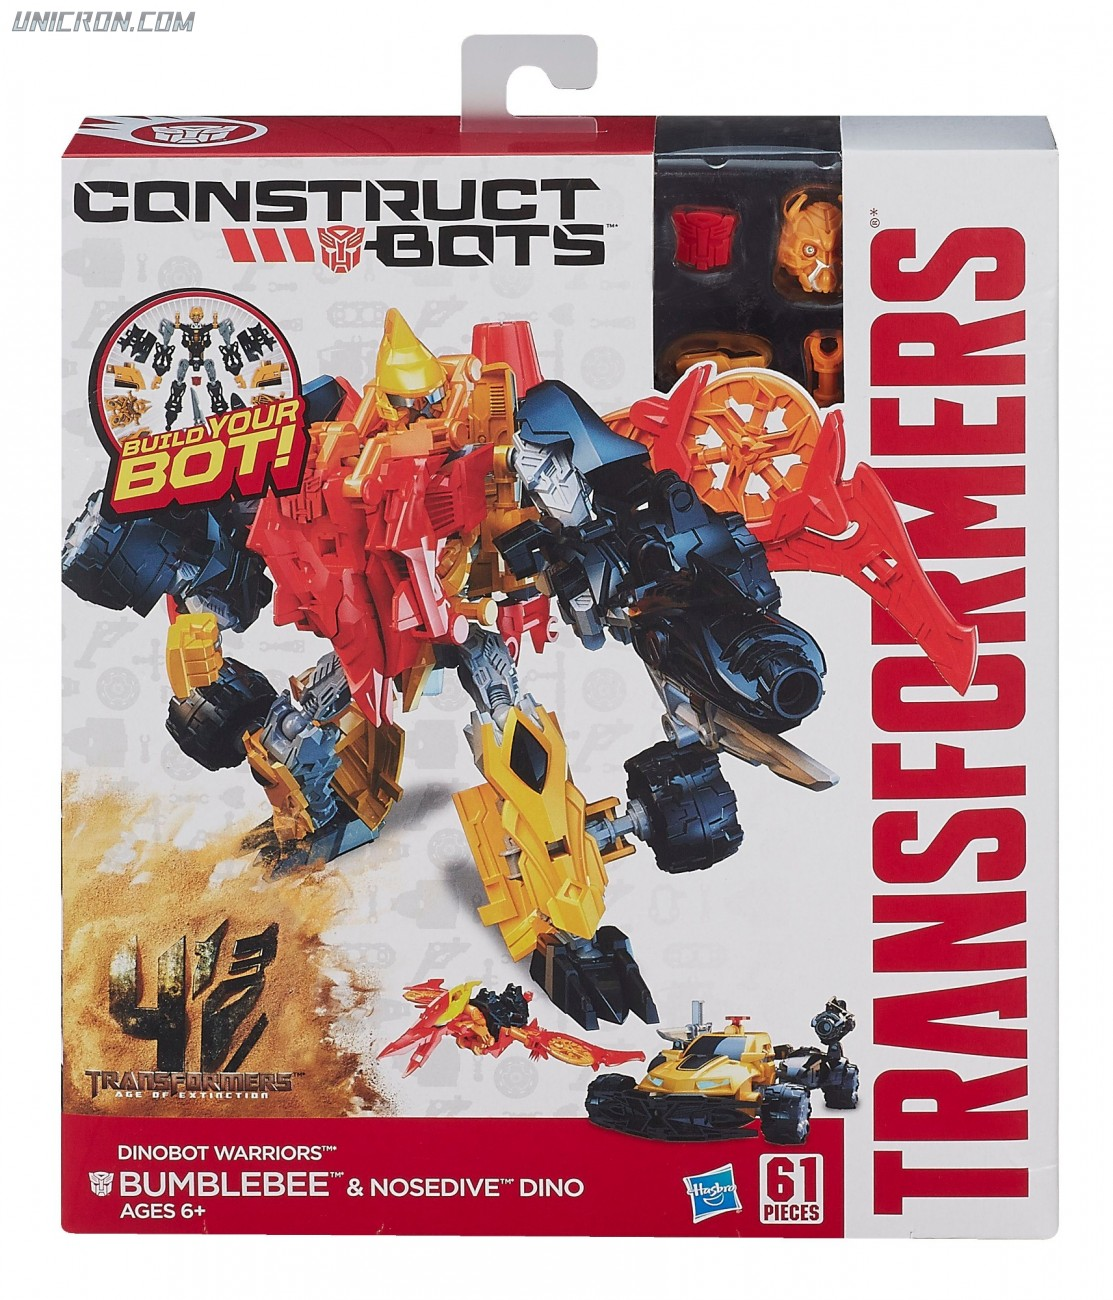 Transformers Construct-Bots Bumblebee with Nosedive- Construct-Bots Dinobot Warriors toy